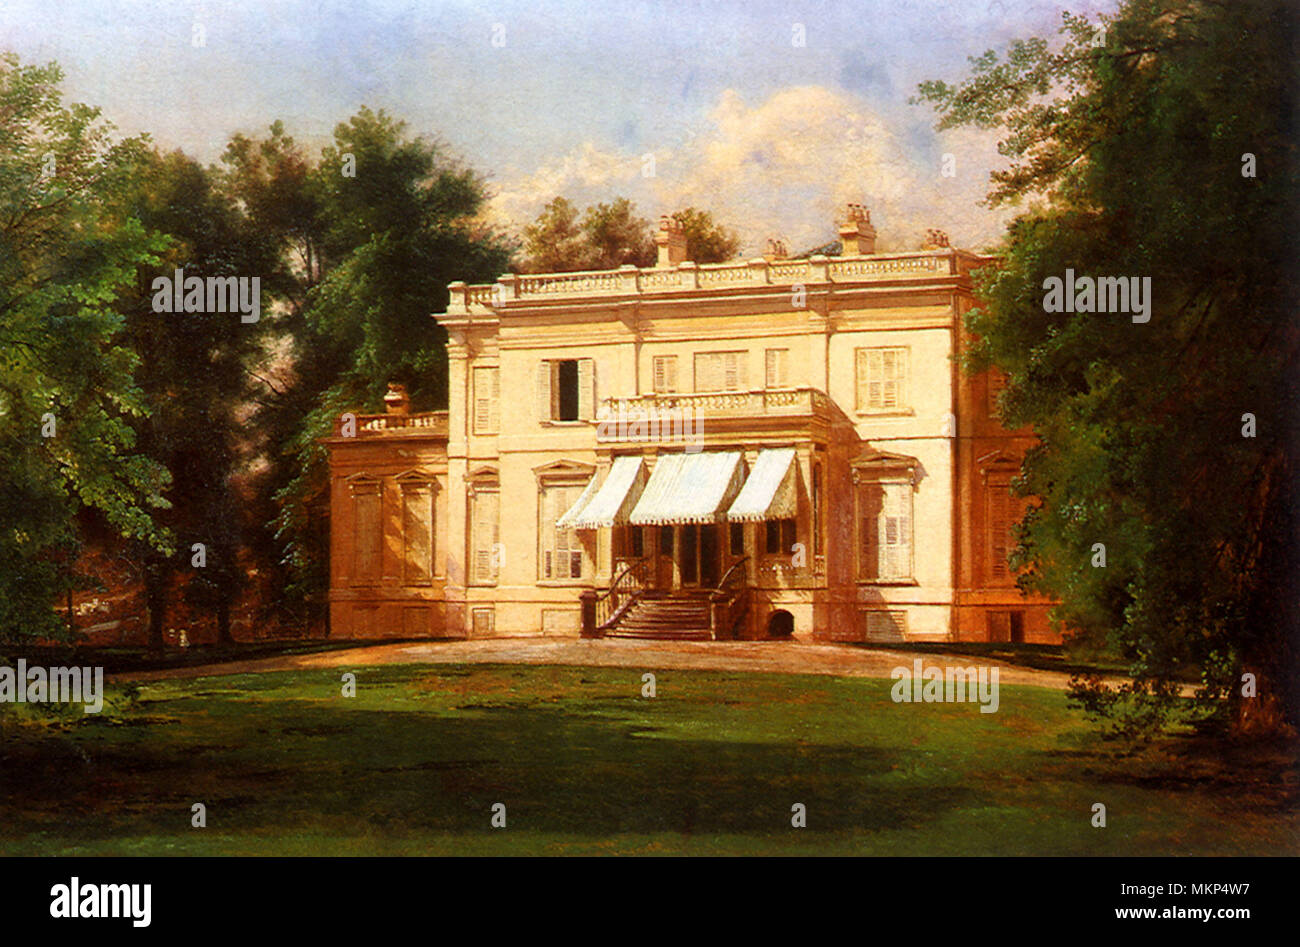 View of the Langdon House - Stock Image